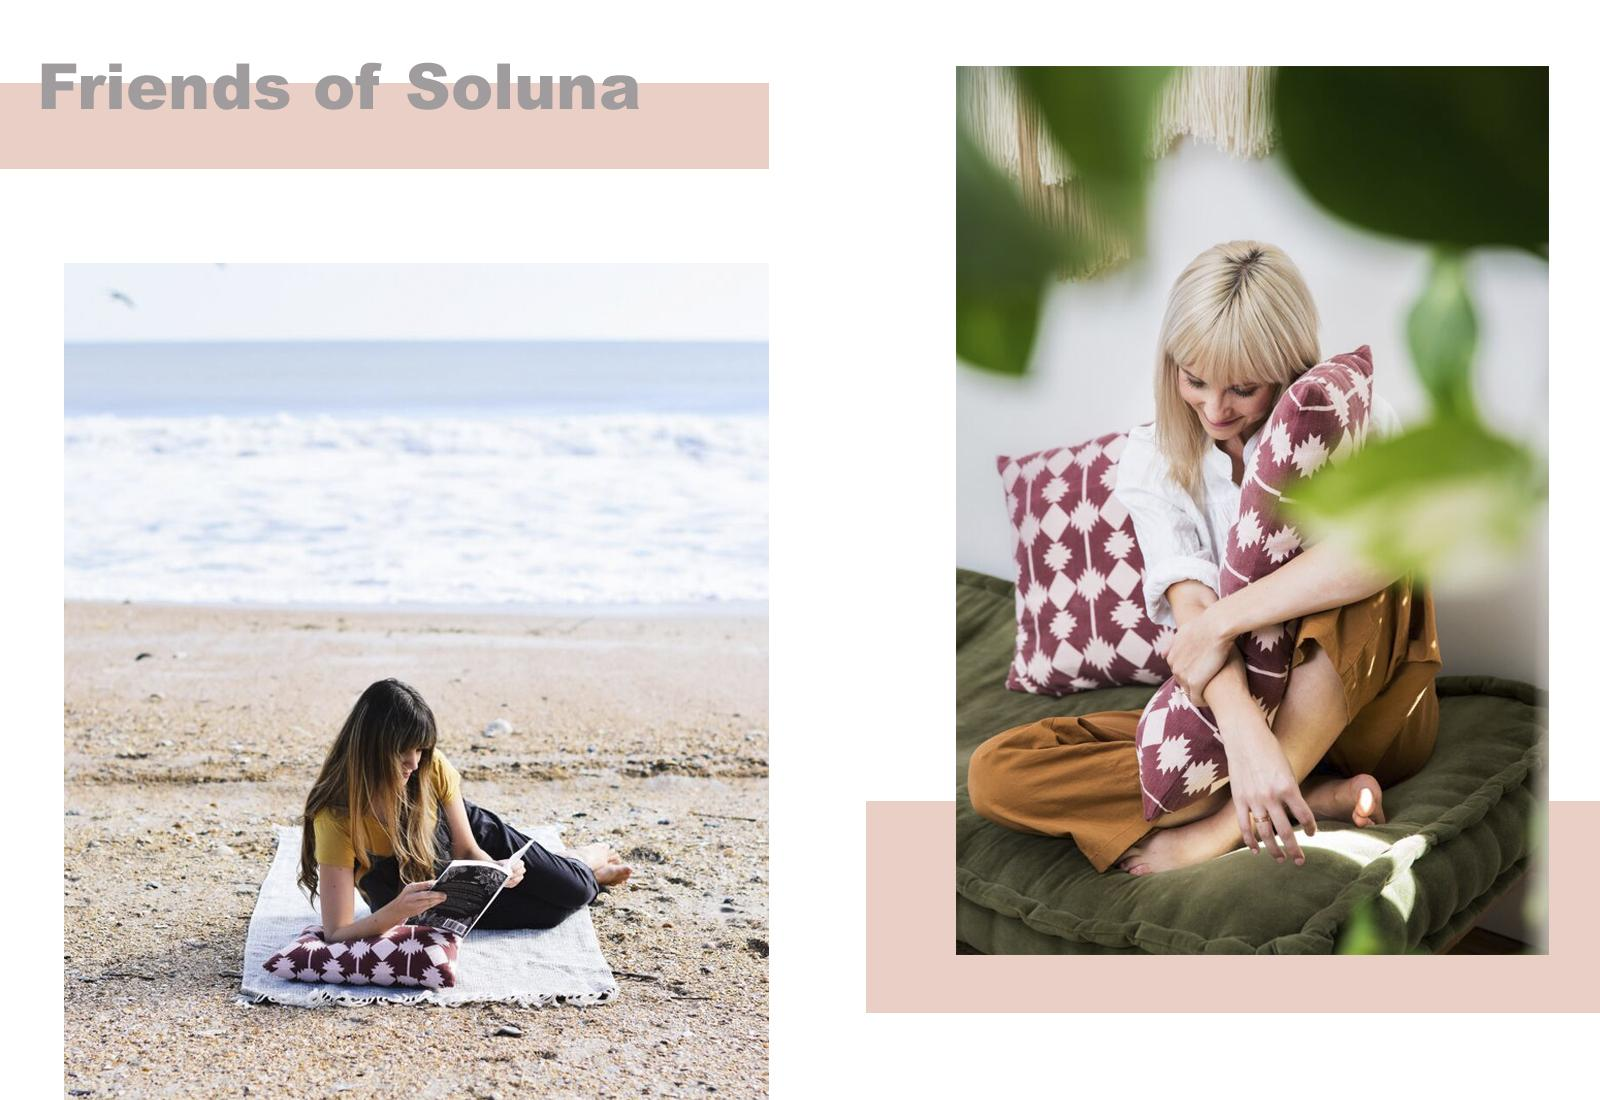 Friends of Soluna